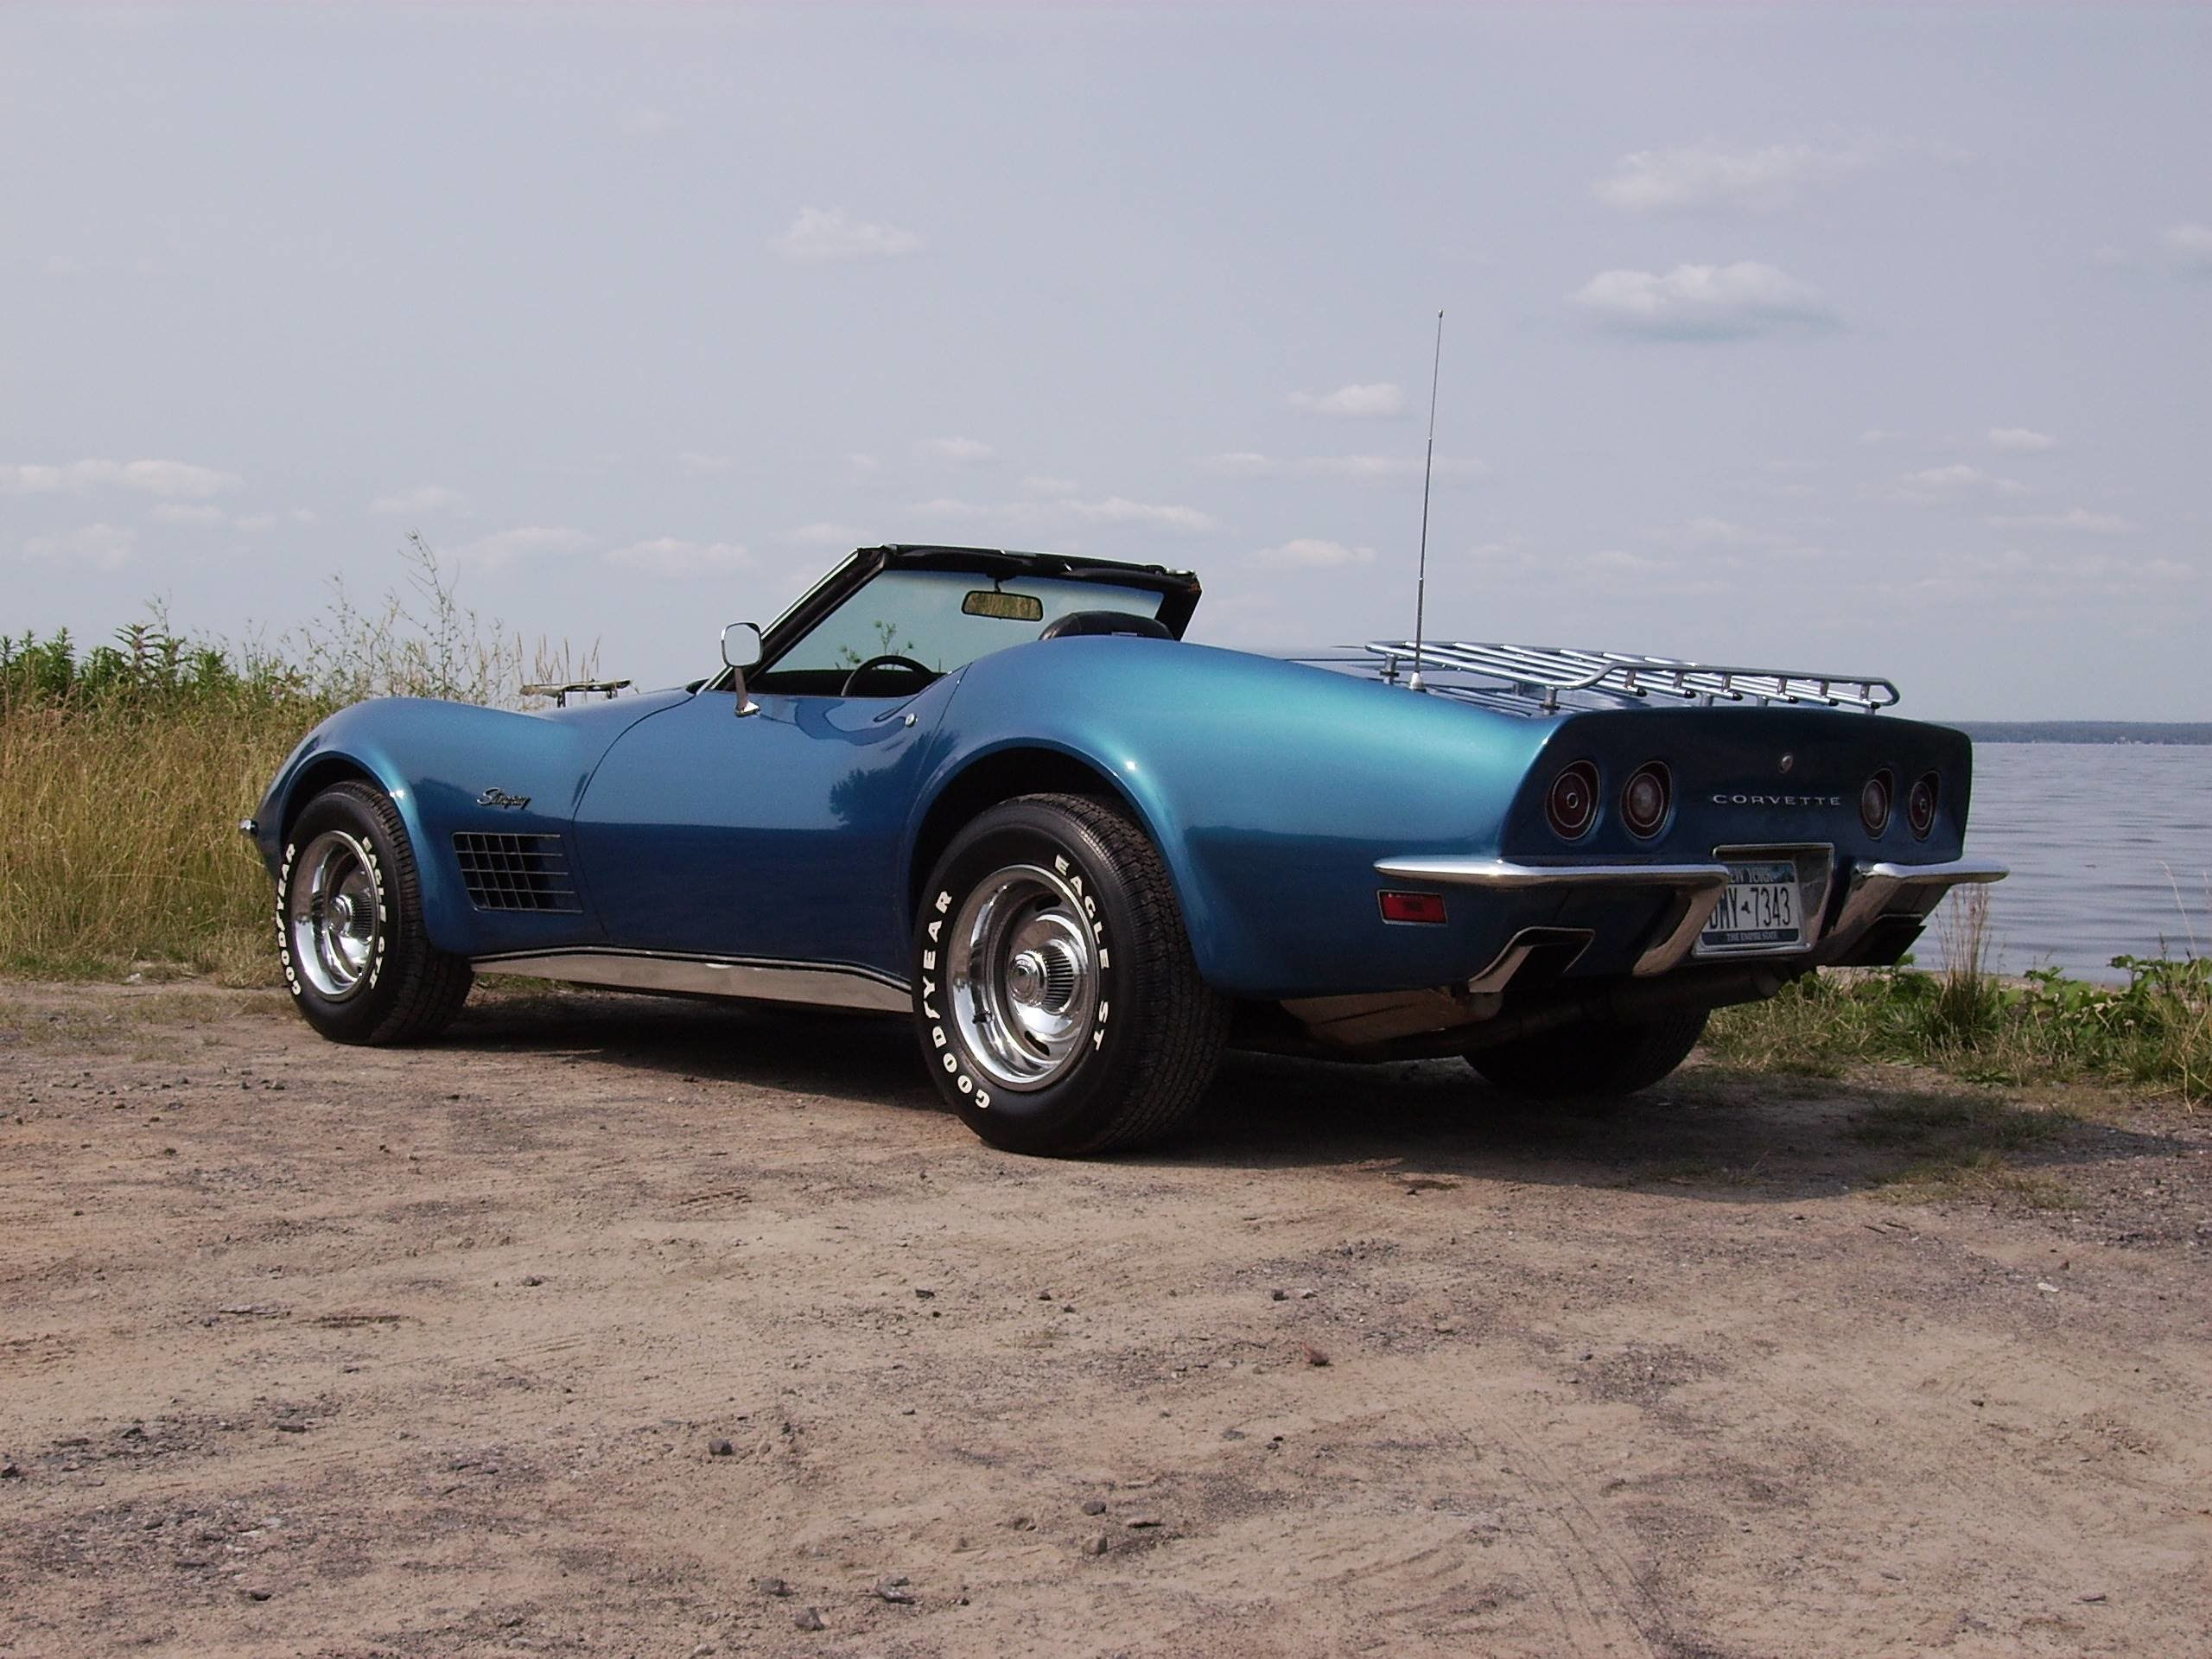 Corvette Stingray Wallpaper on Stingray Chevrolet Corvette Hd Wallpaper   Cars   Trucks   636969